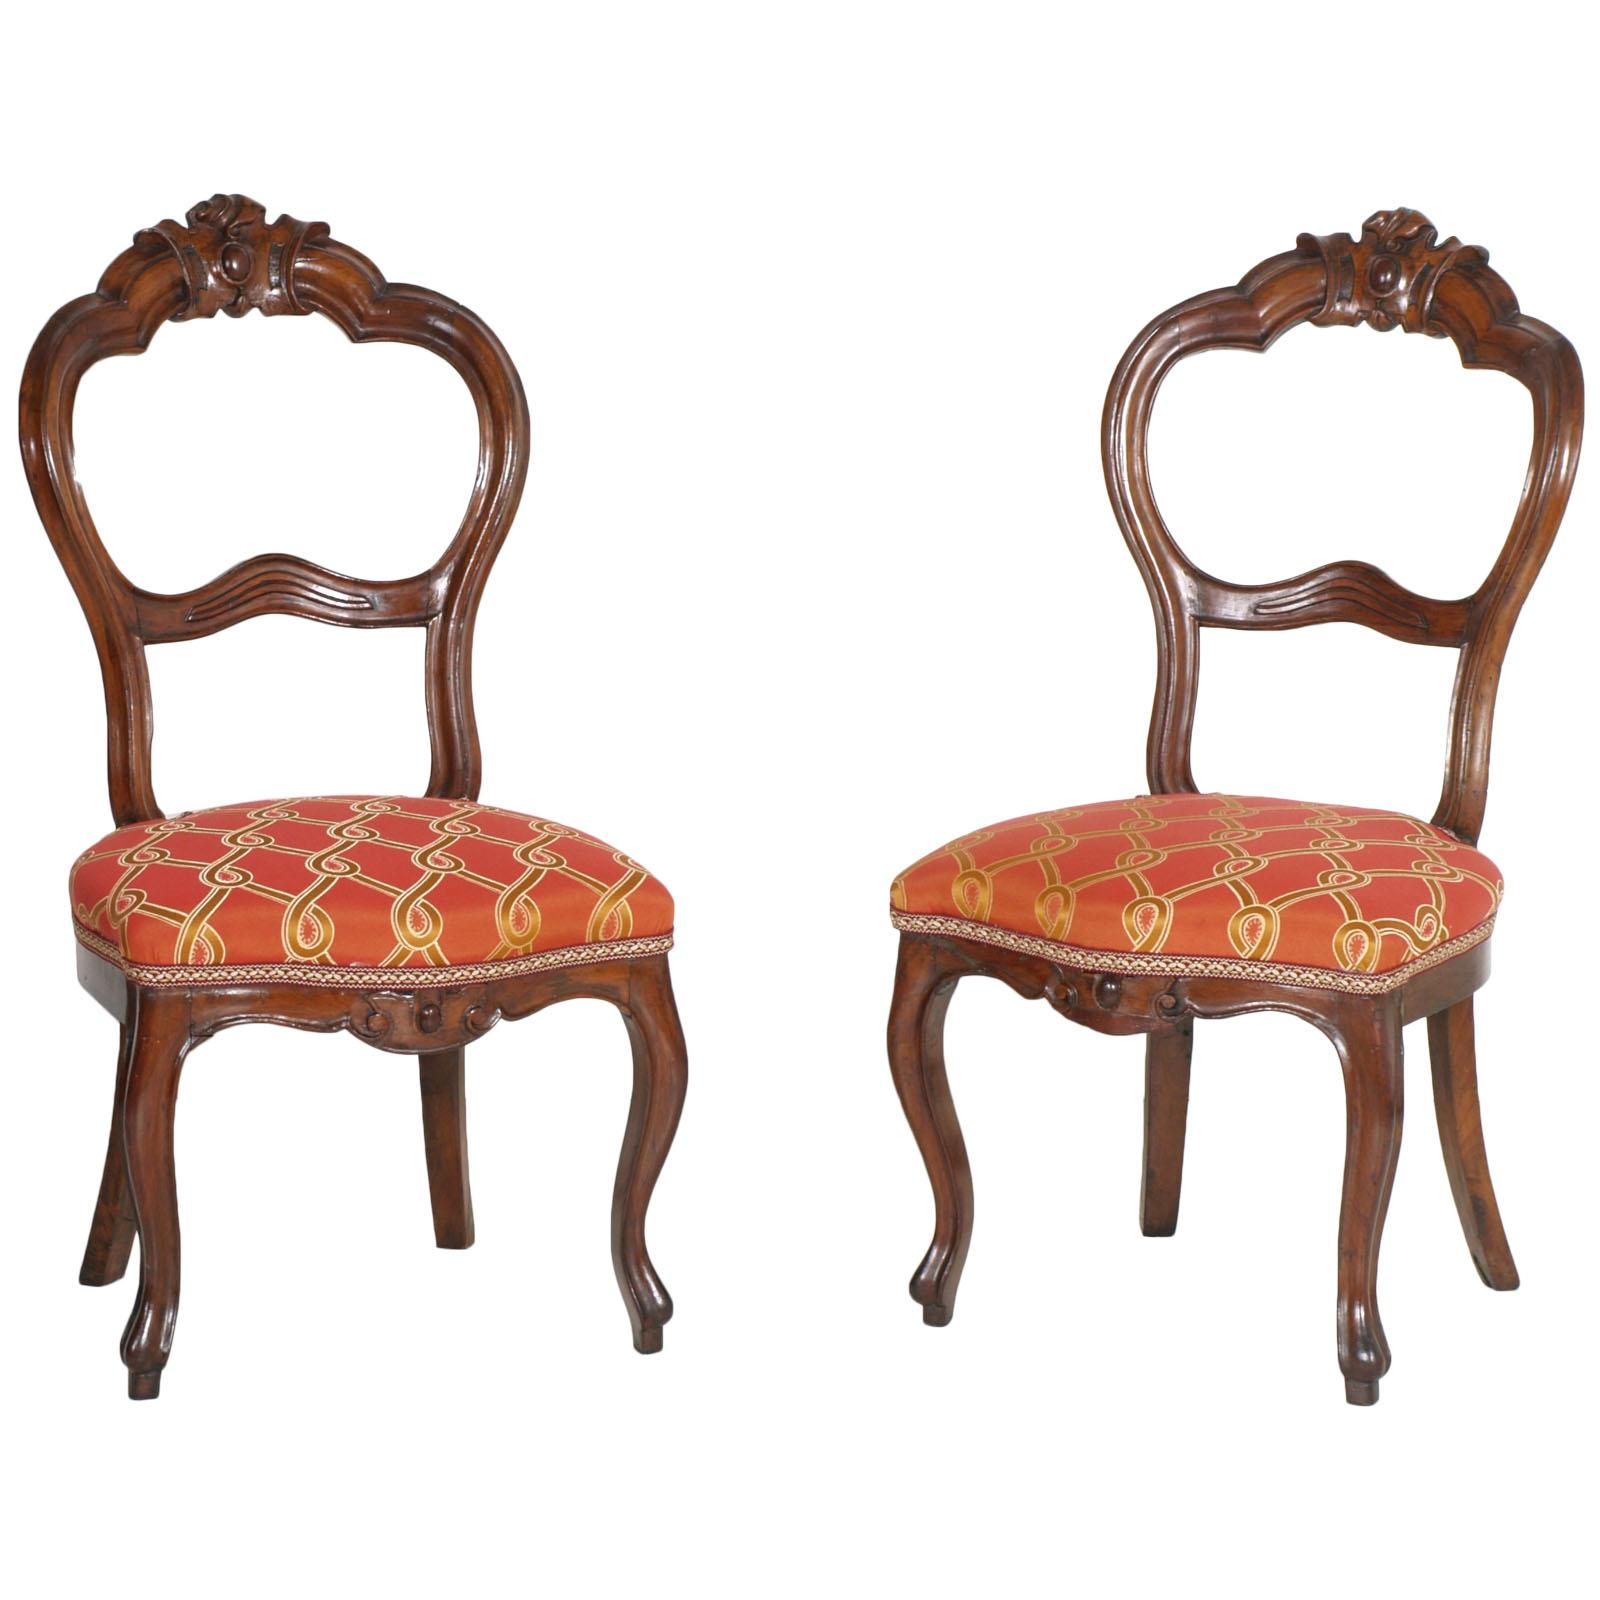 Italian Baroque Louis Philippe Side Chairs or Slipper Chairs in Walnut, Restored